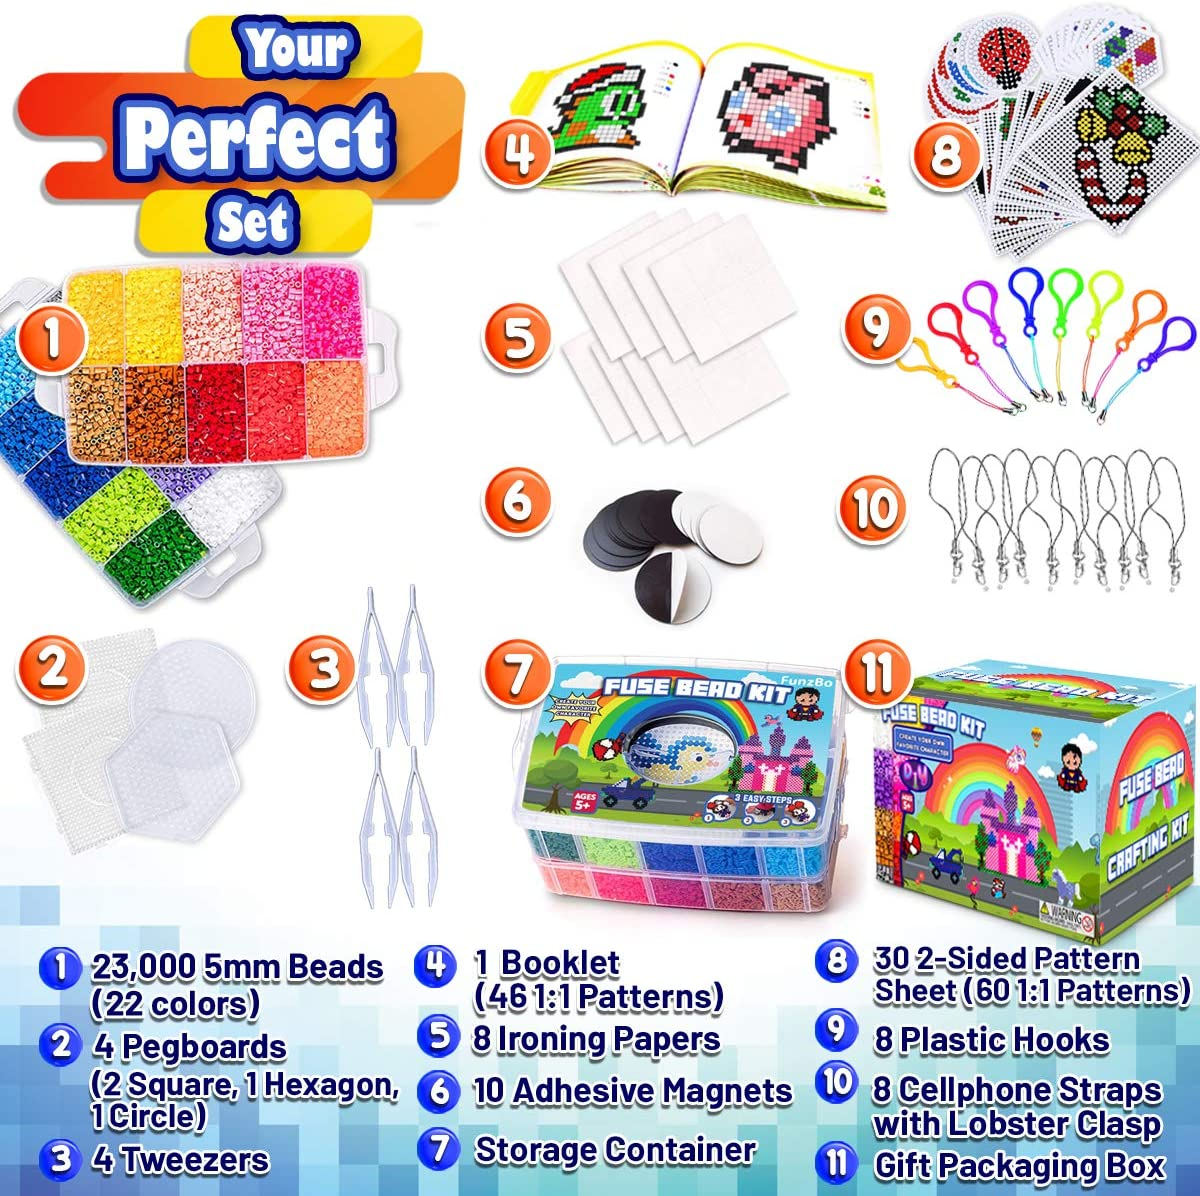 Mega FunzBo Fuse Beads for Kids Craft Art 106 Patterns Fusebead Melty Fusion Colored Perla Pearler Beads Arts and Crafts Pearler Set for Boys Girls Age 4 5 6 7 8 Year Old Classroom